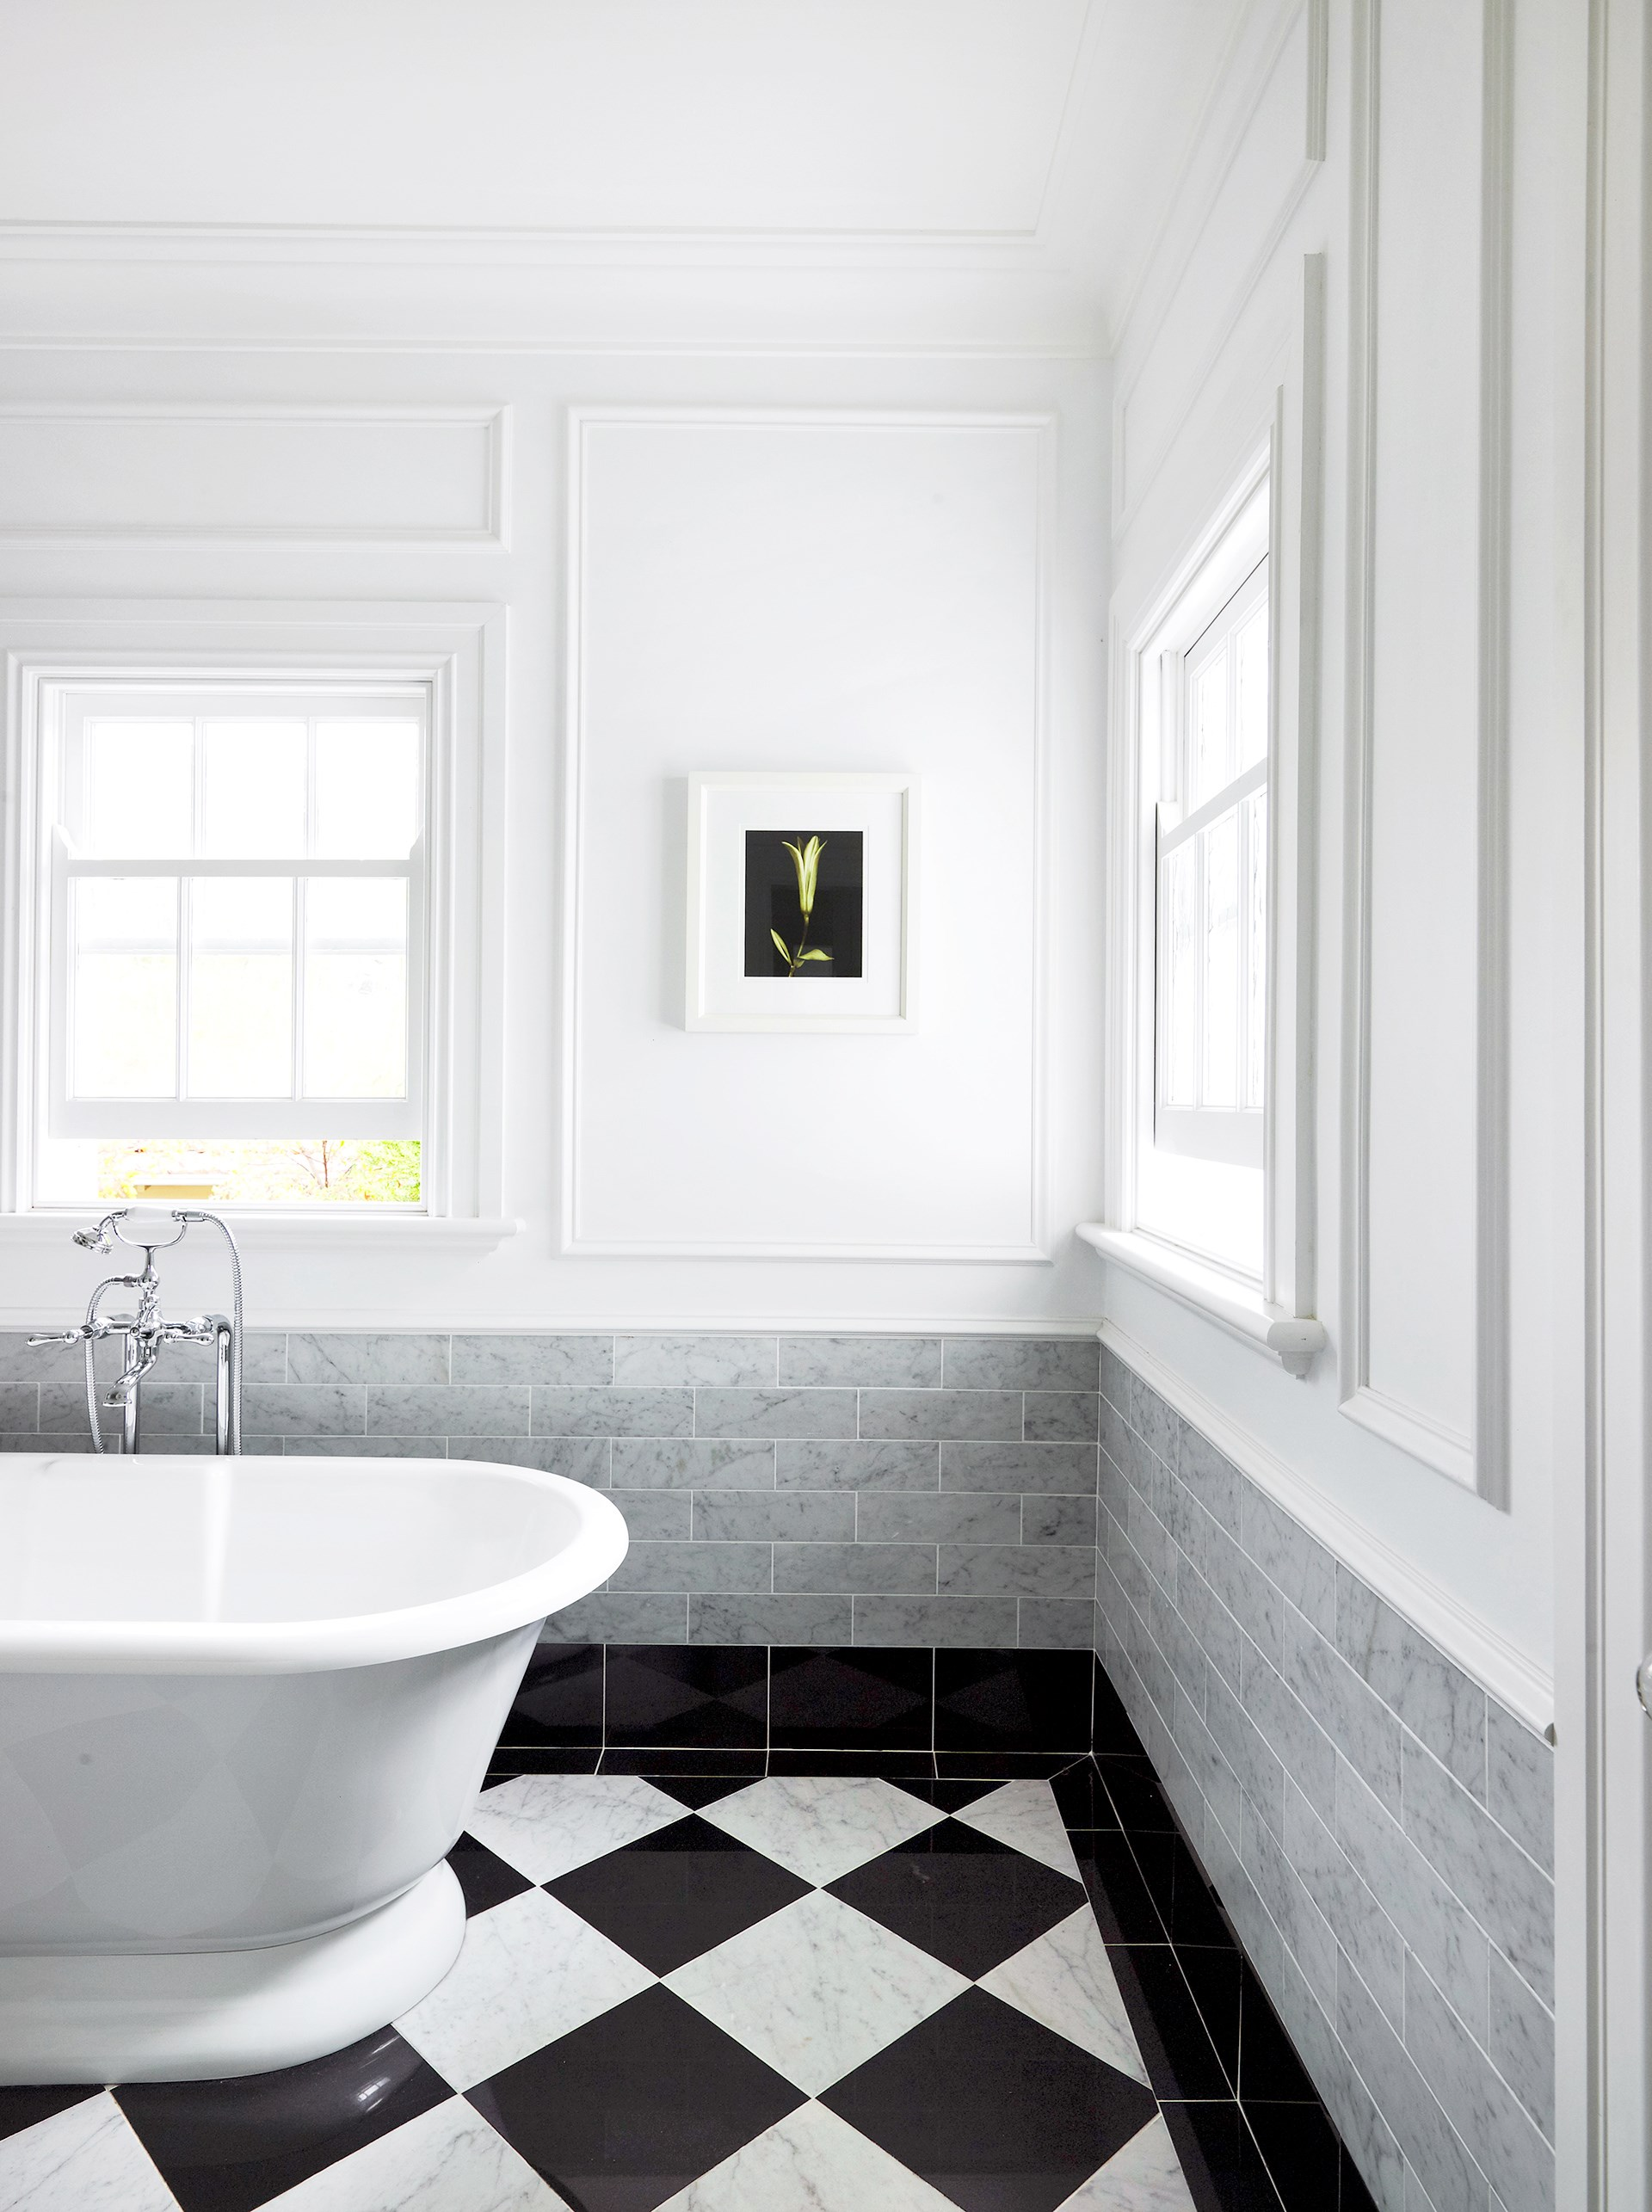 """The classic lines of this [Victoria & Albert](http://vandabaths.com/aus/australasia/